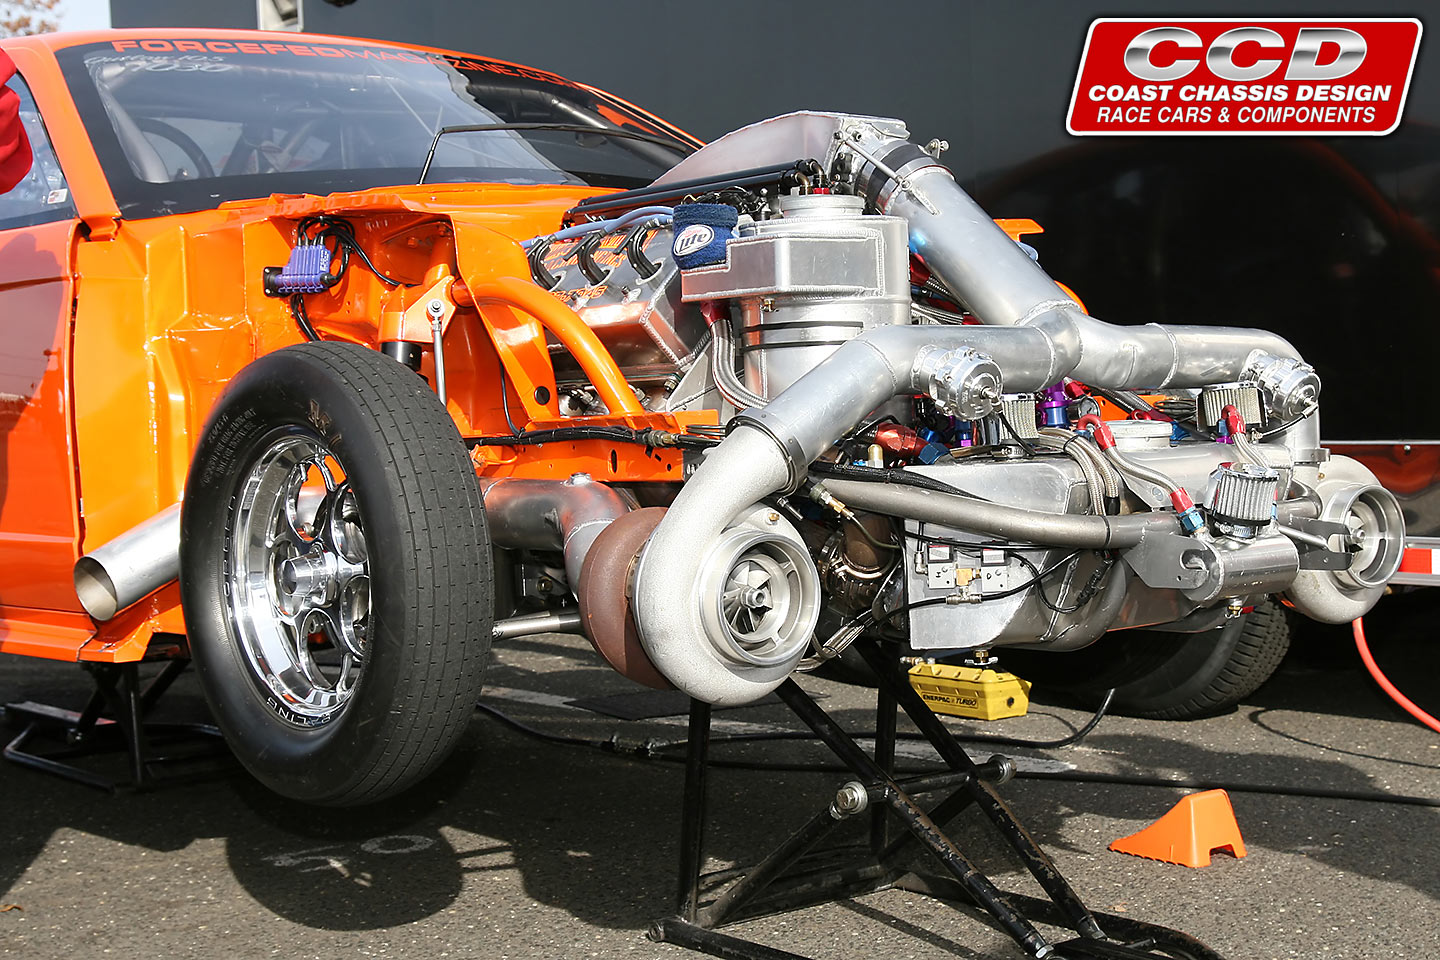 Coast chassis design customers free drag racing wallapers - Drag race wallpaper ...